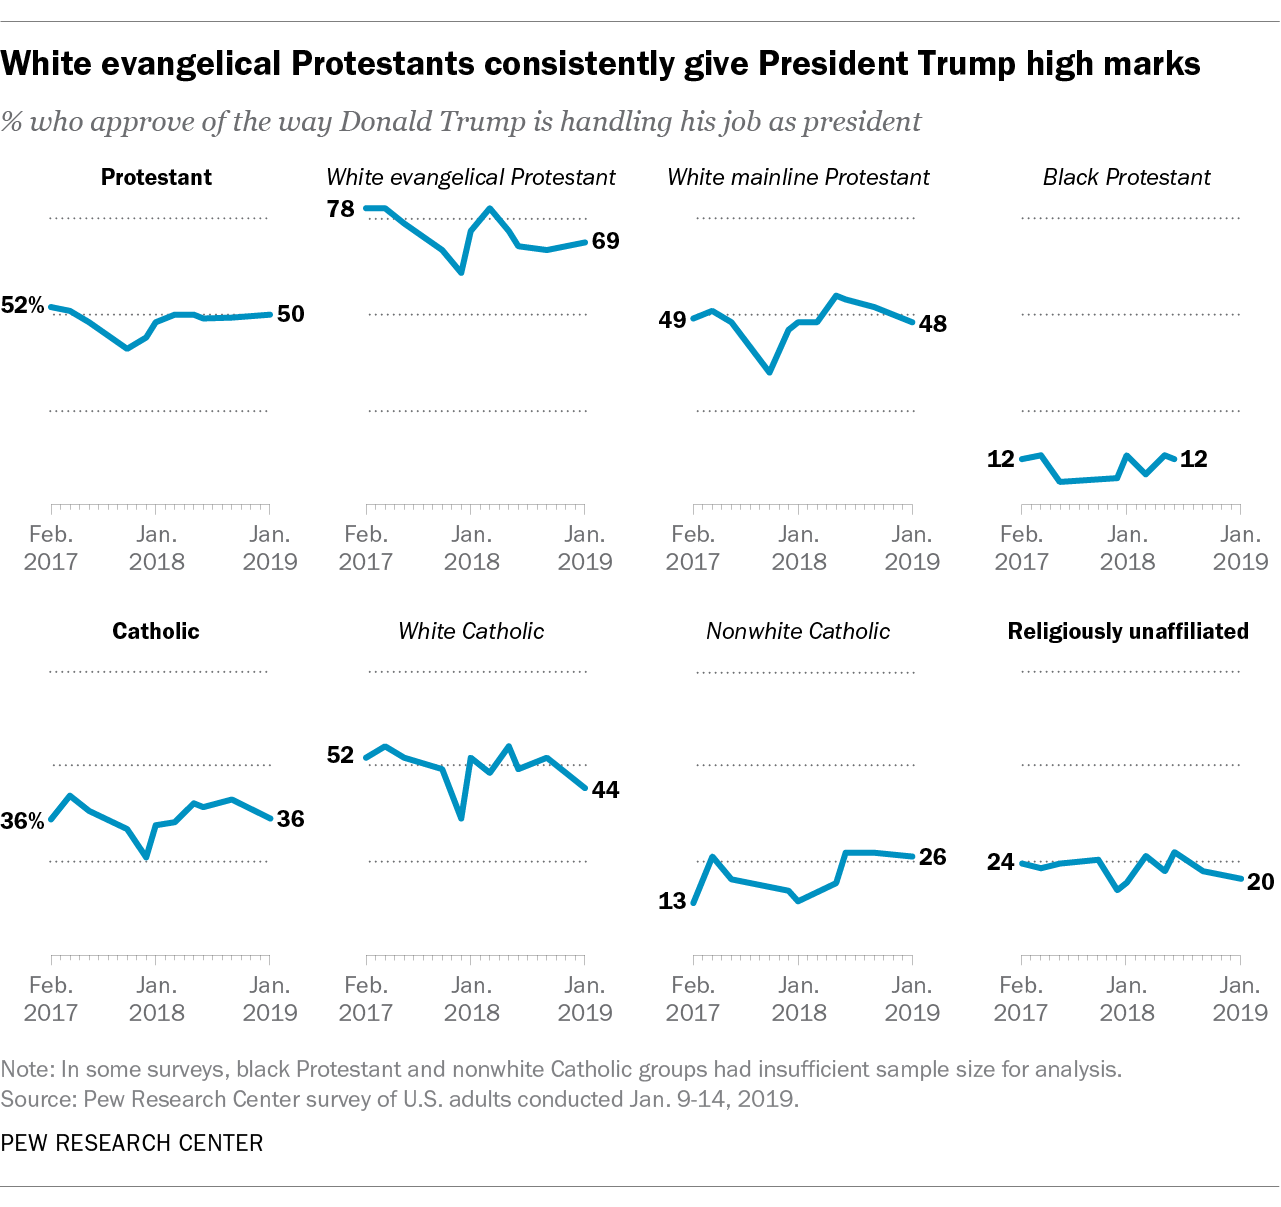 White evangelical Protestants consistently give President Trump high marks